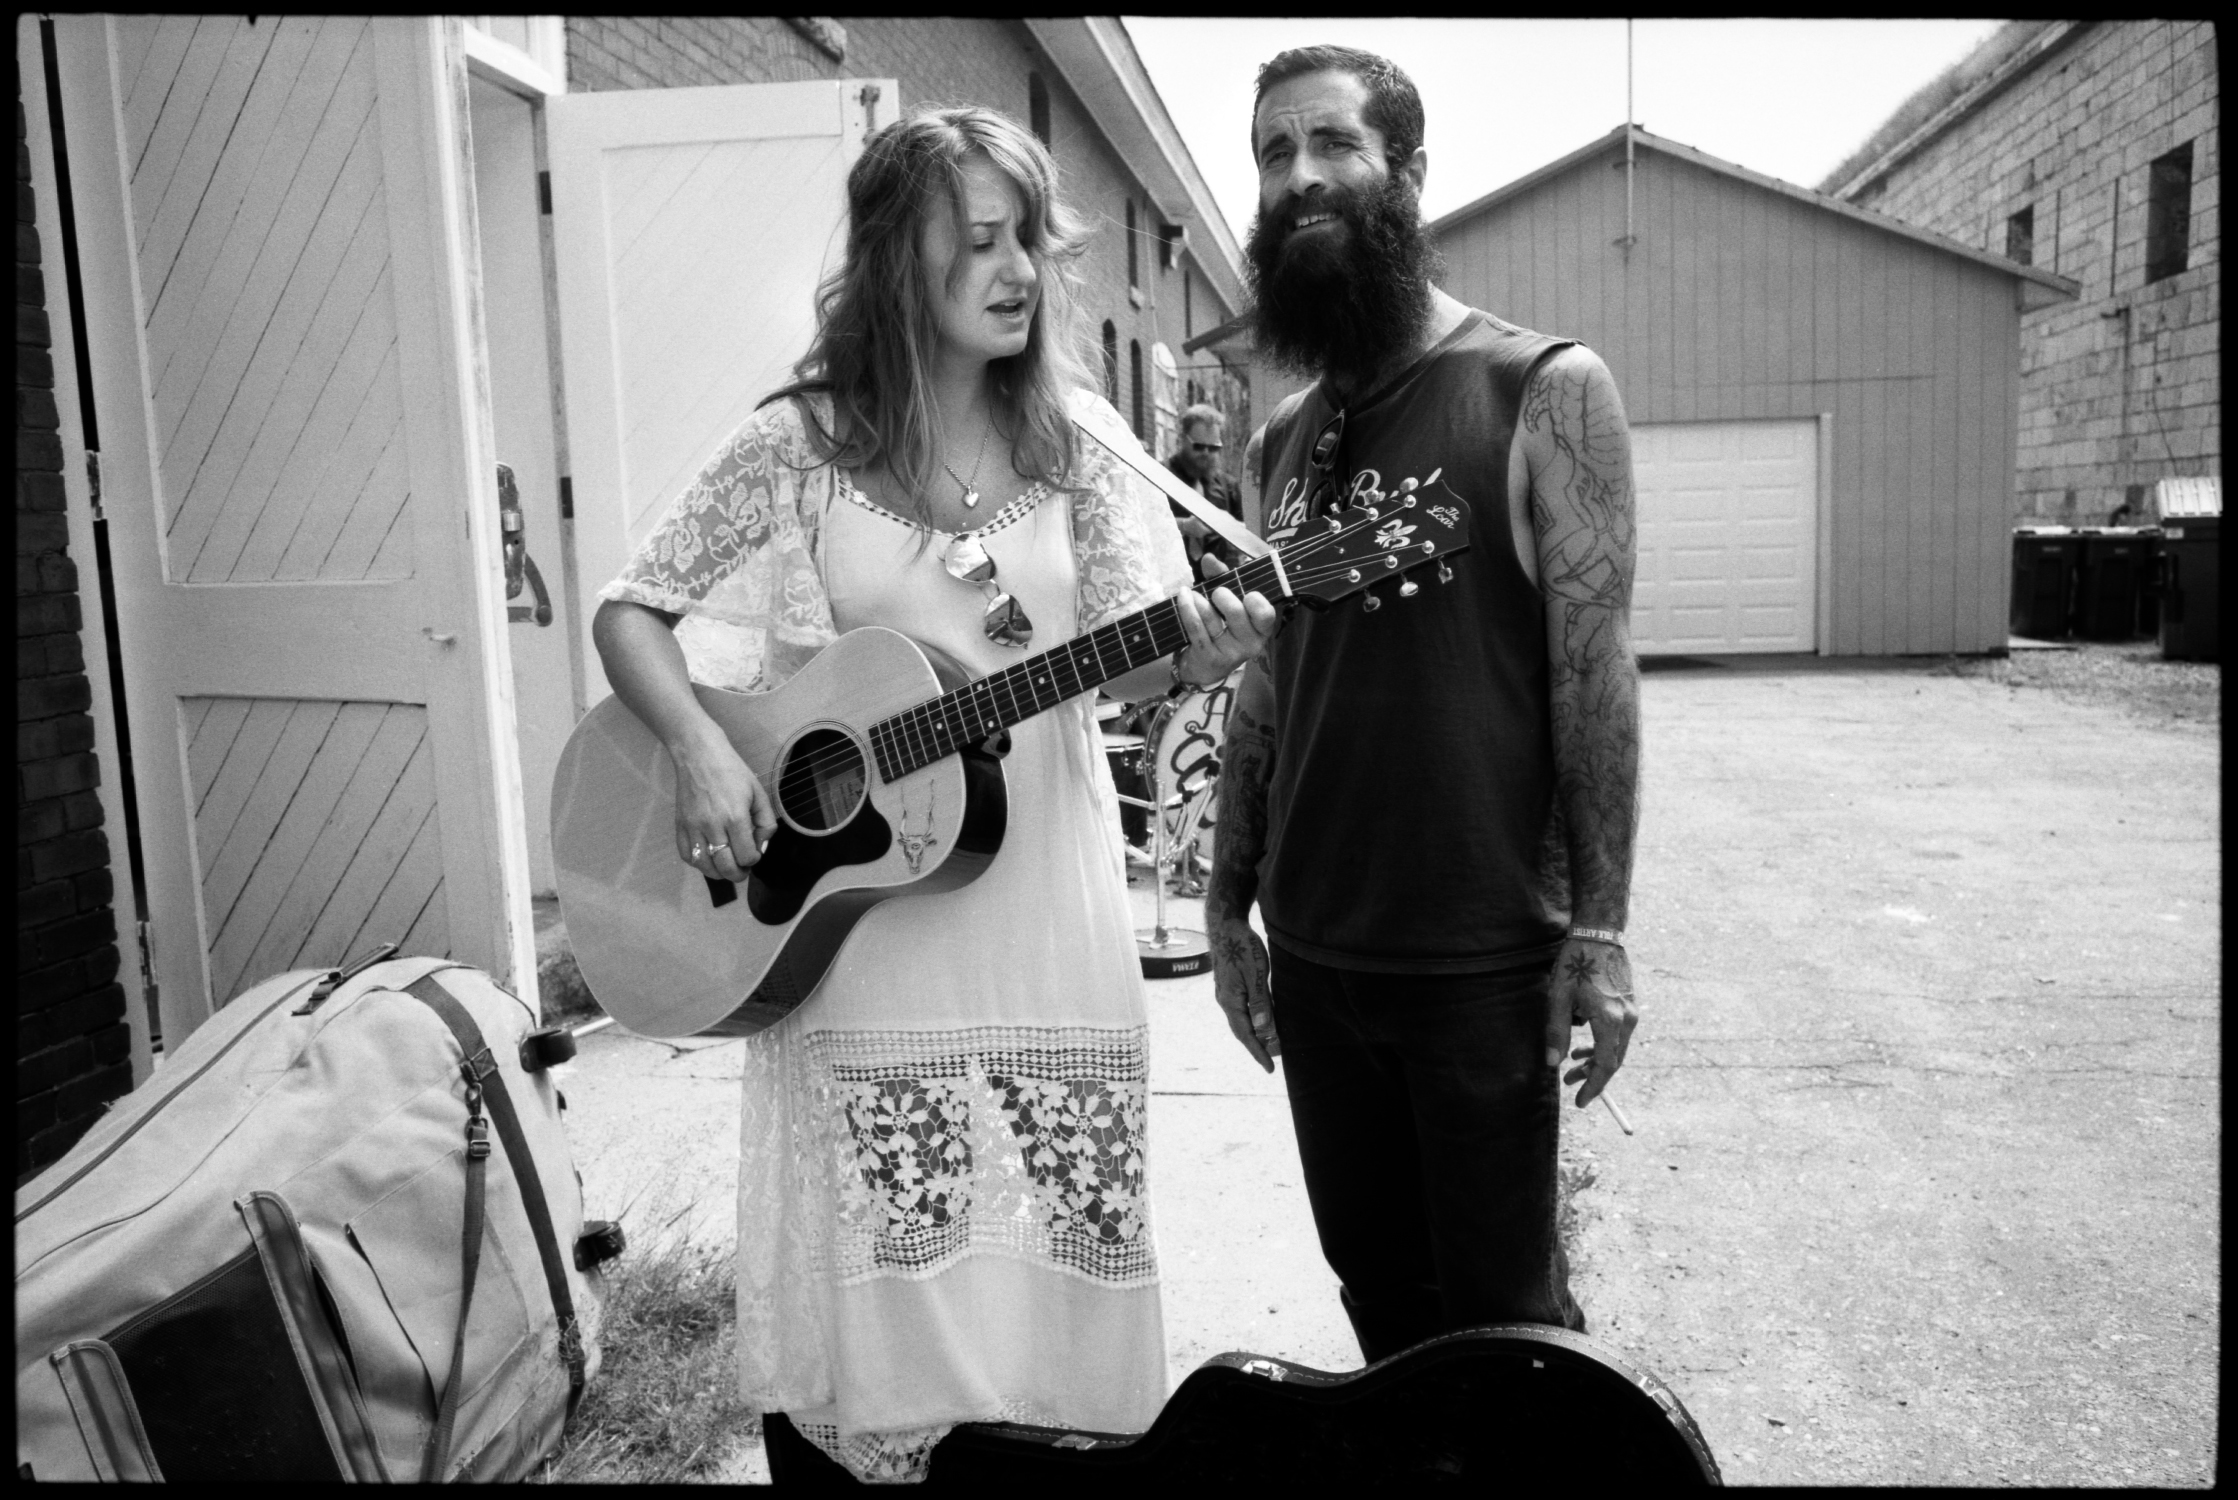 Margo price and jp harris rehearsing backstage